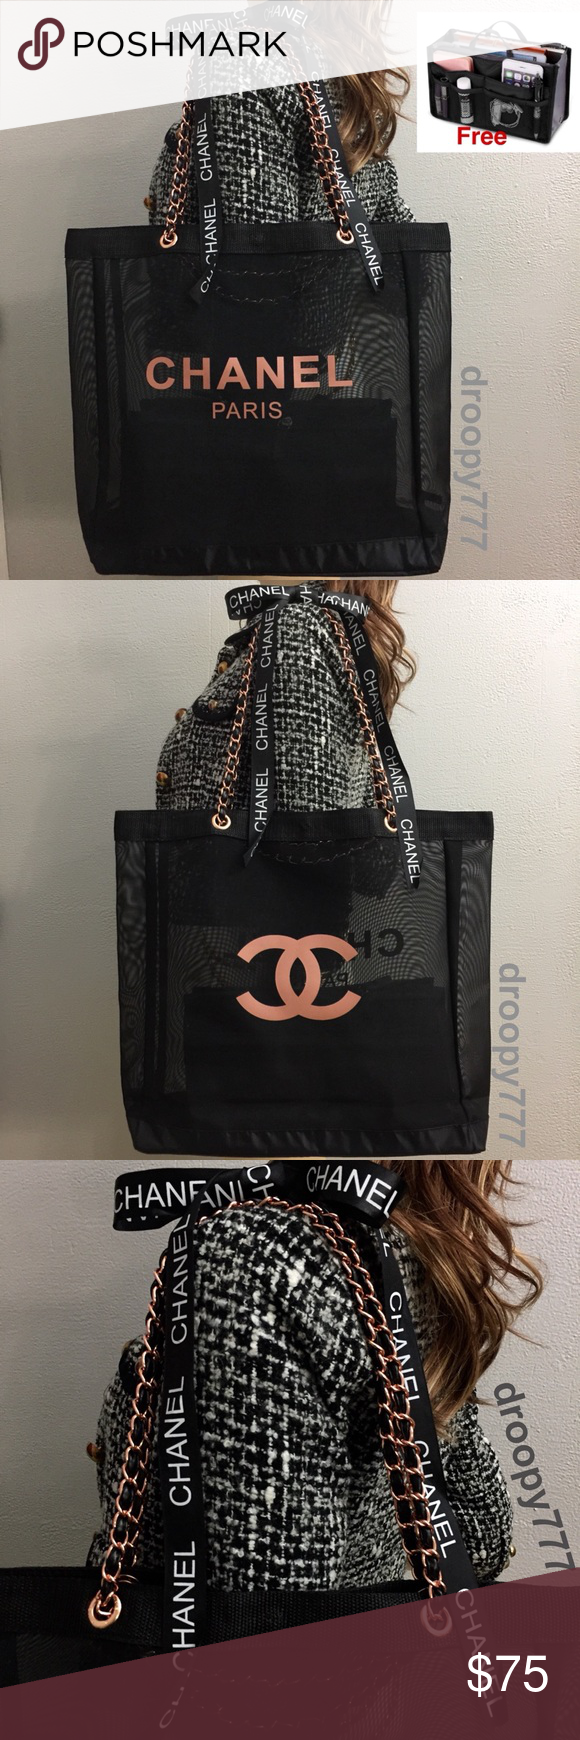 32a0c429aa37 FREE organizer   Rose Gold beauté chanel black . Chanel VIP Tote ...